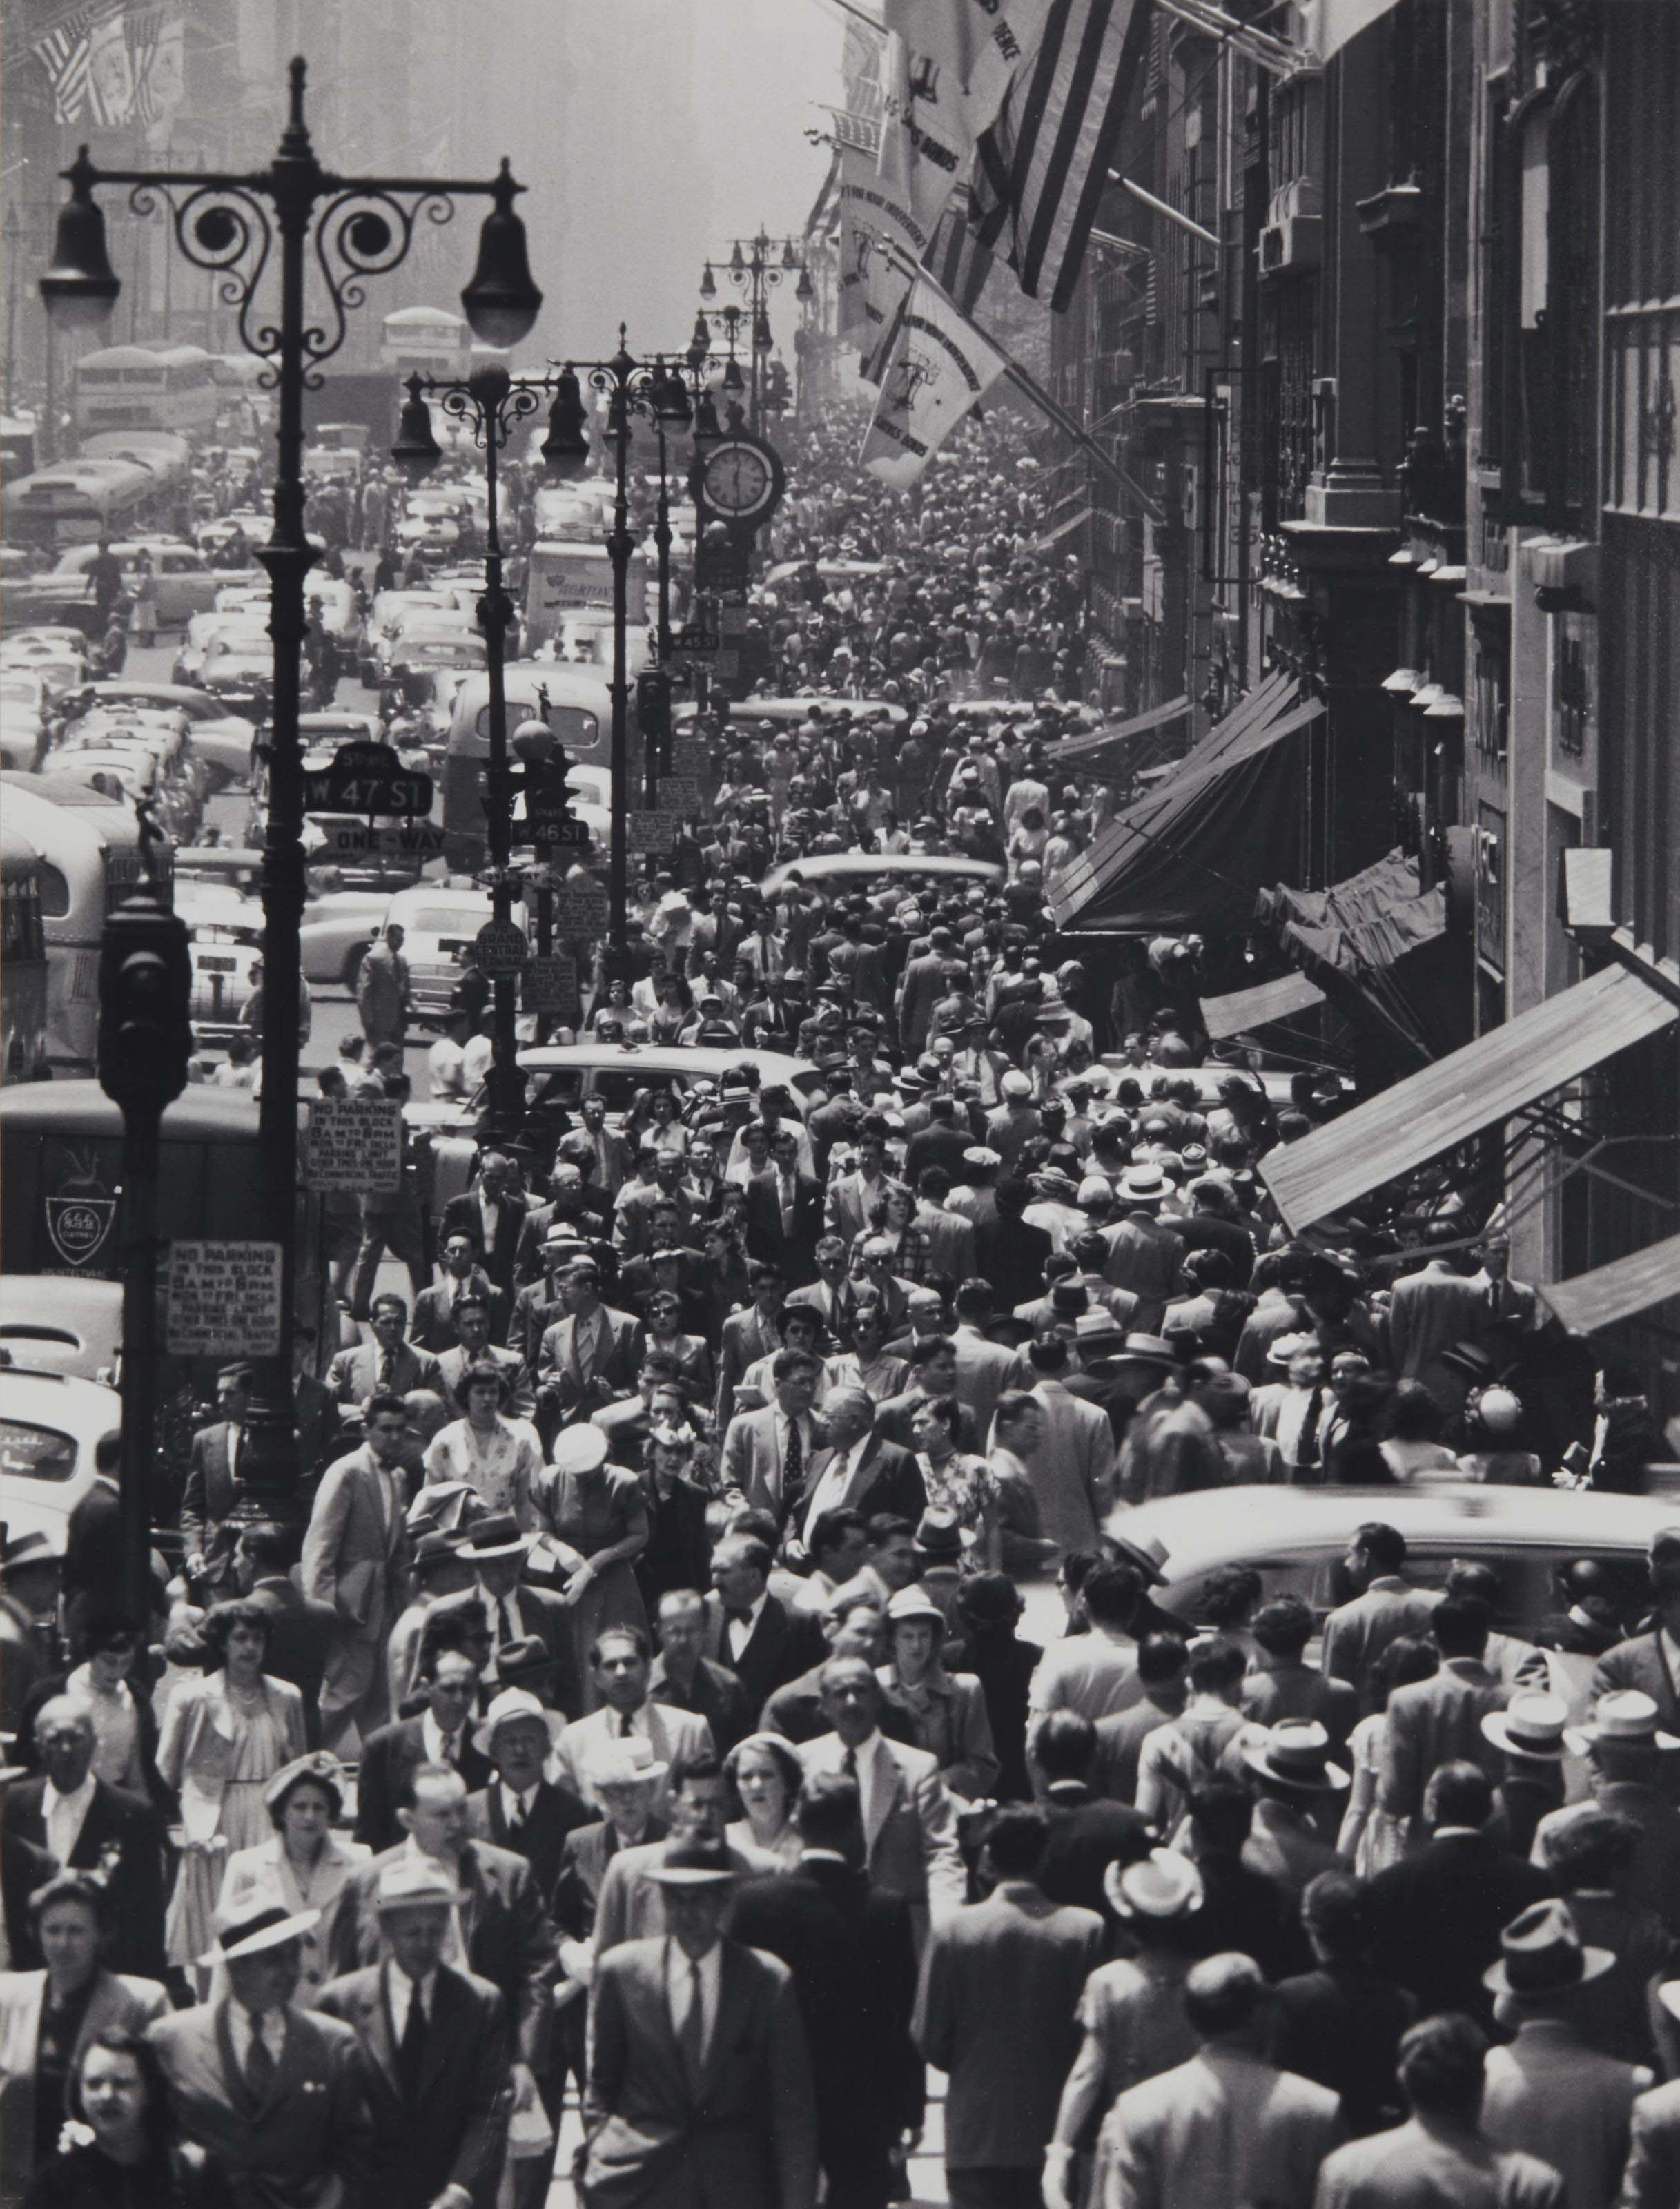 Lunch rush on Fifth Avenue, New York City, 1950